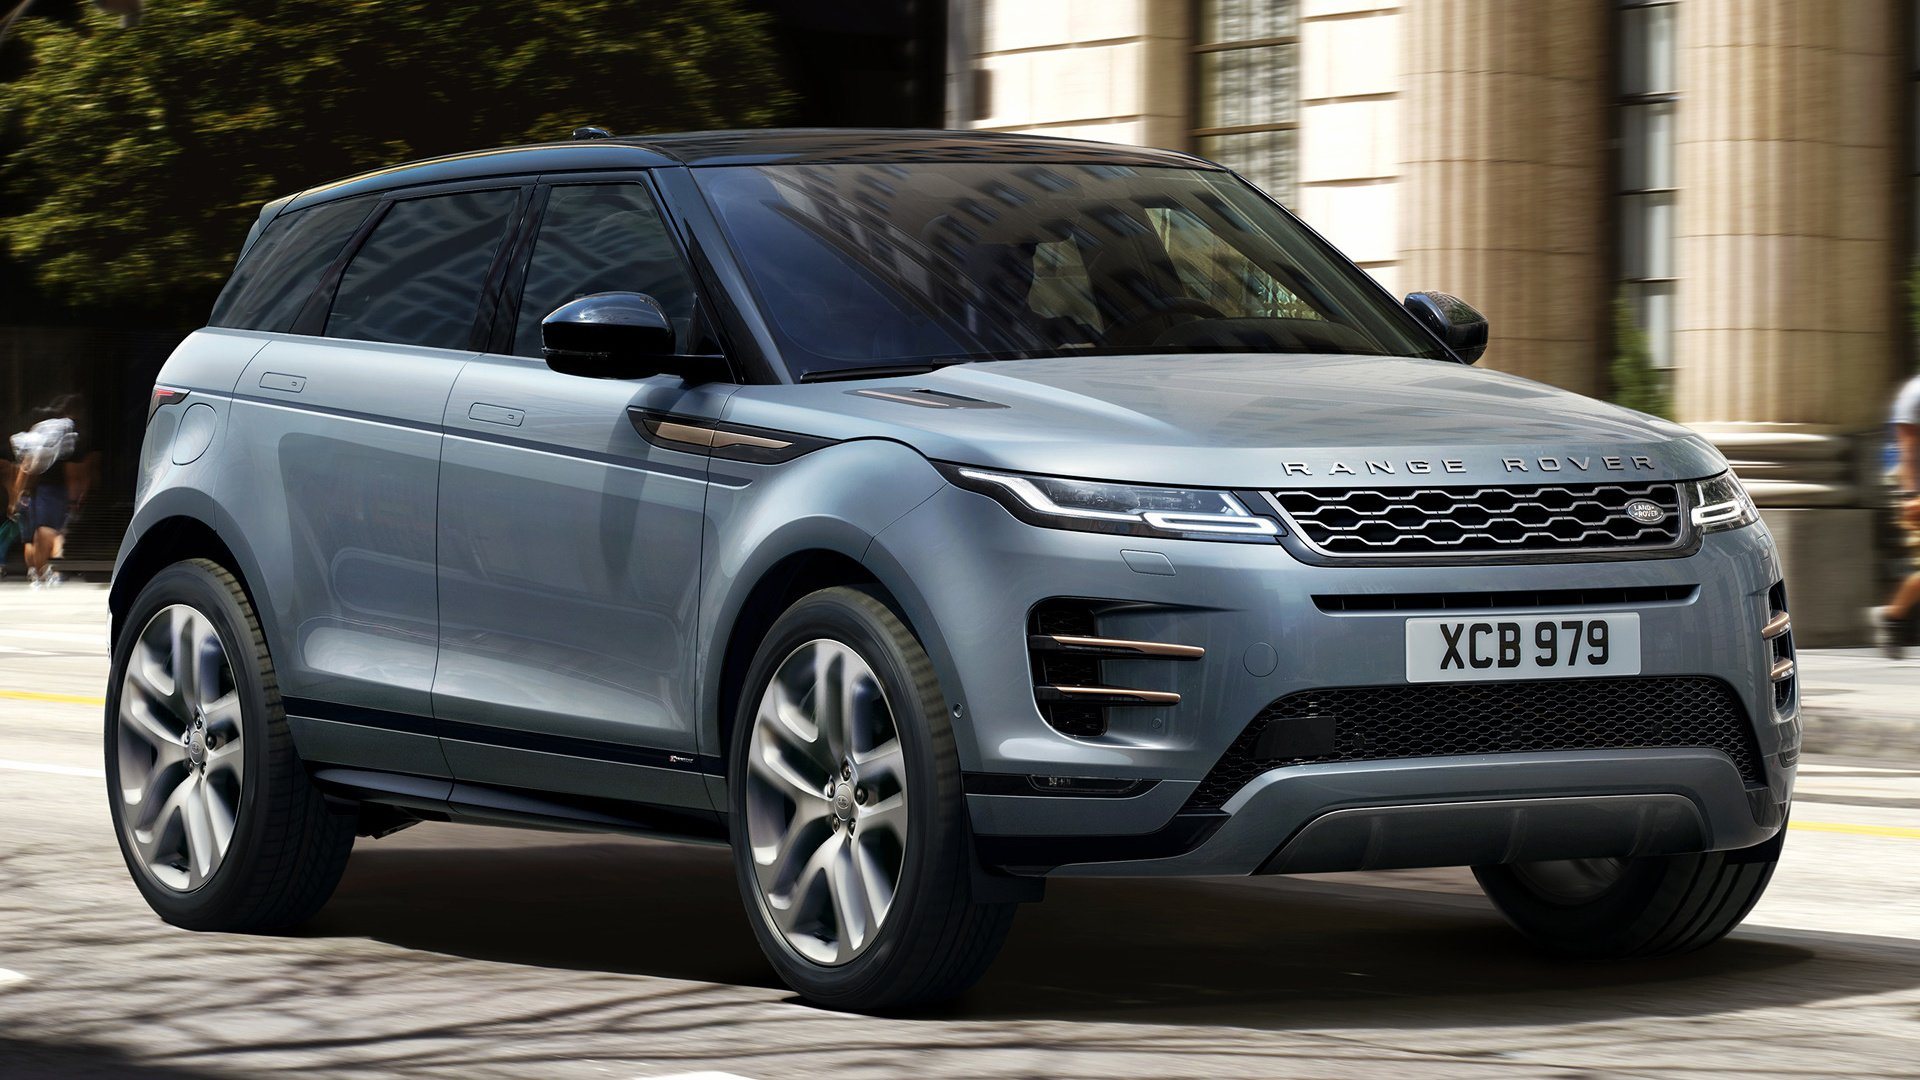 2019 Range Rover Evoque R Dynamic   Wallpapers and HD Images Car 1920x1080